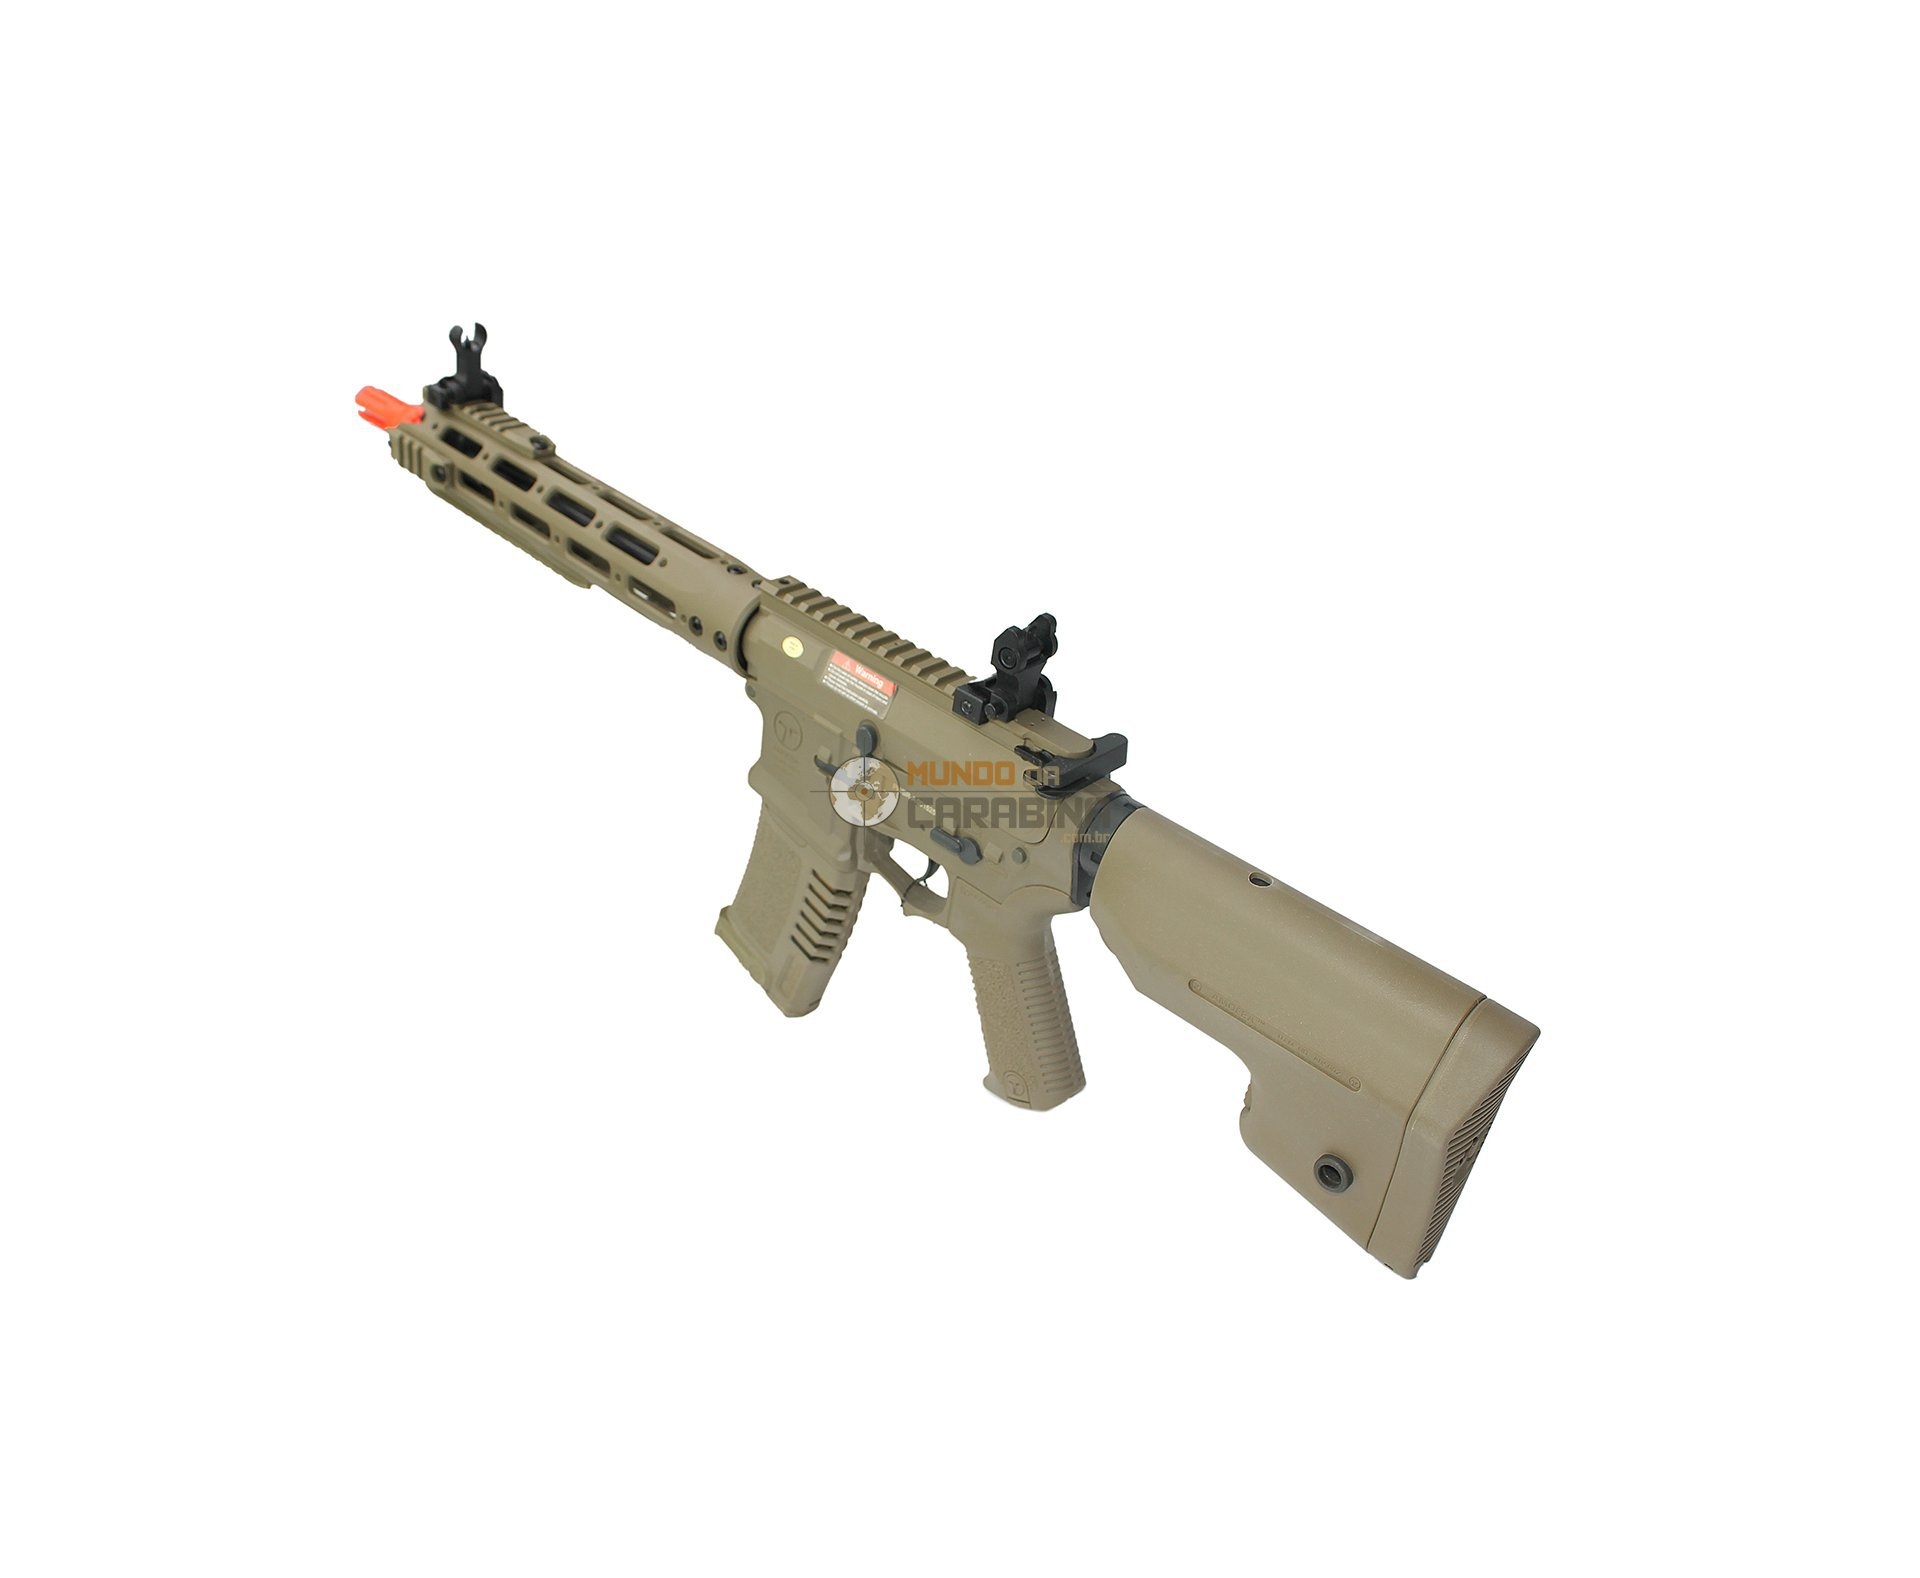 Rifle De Airsoft M4 Ris Long Amoeba Am-009-de - Cal 6.0mm - Ares